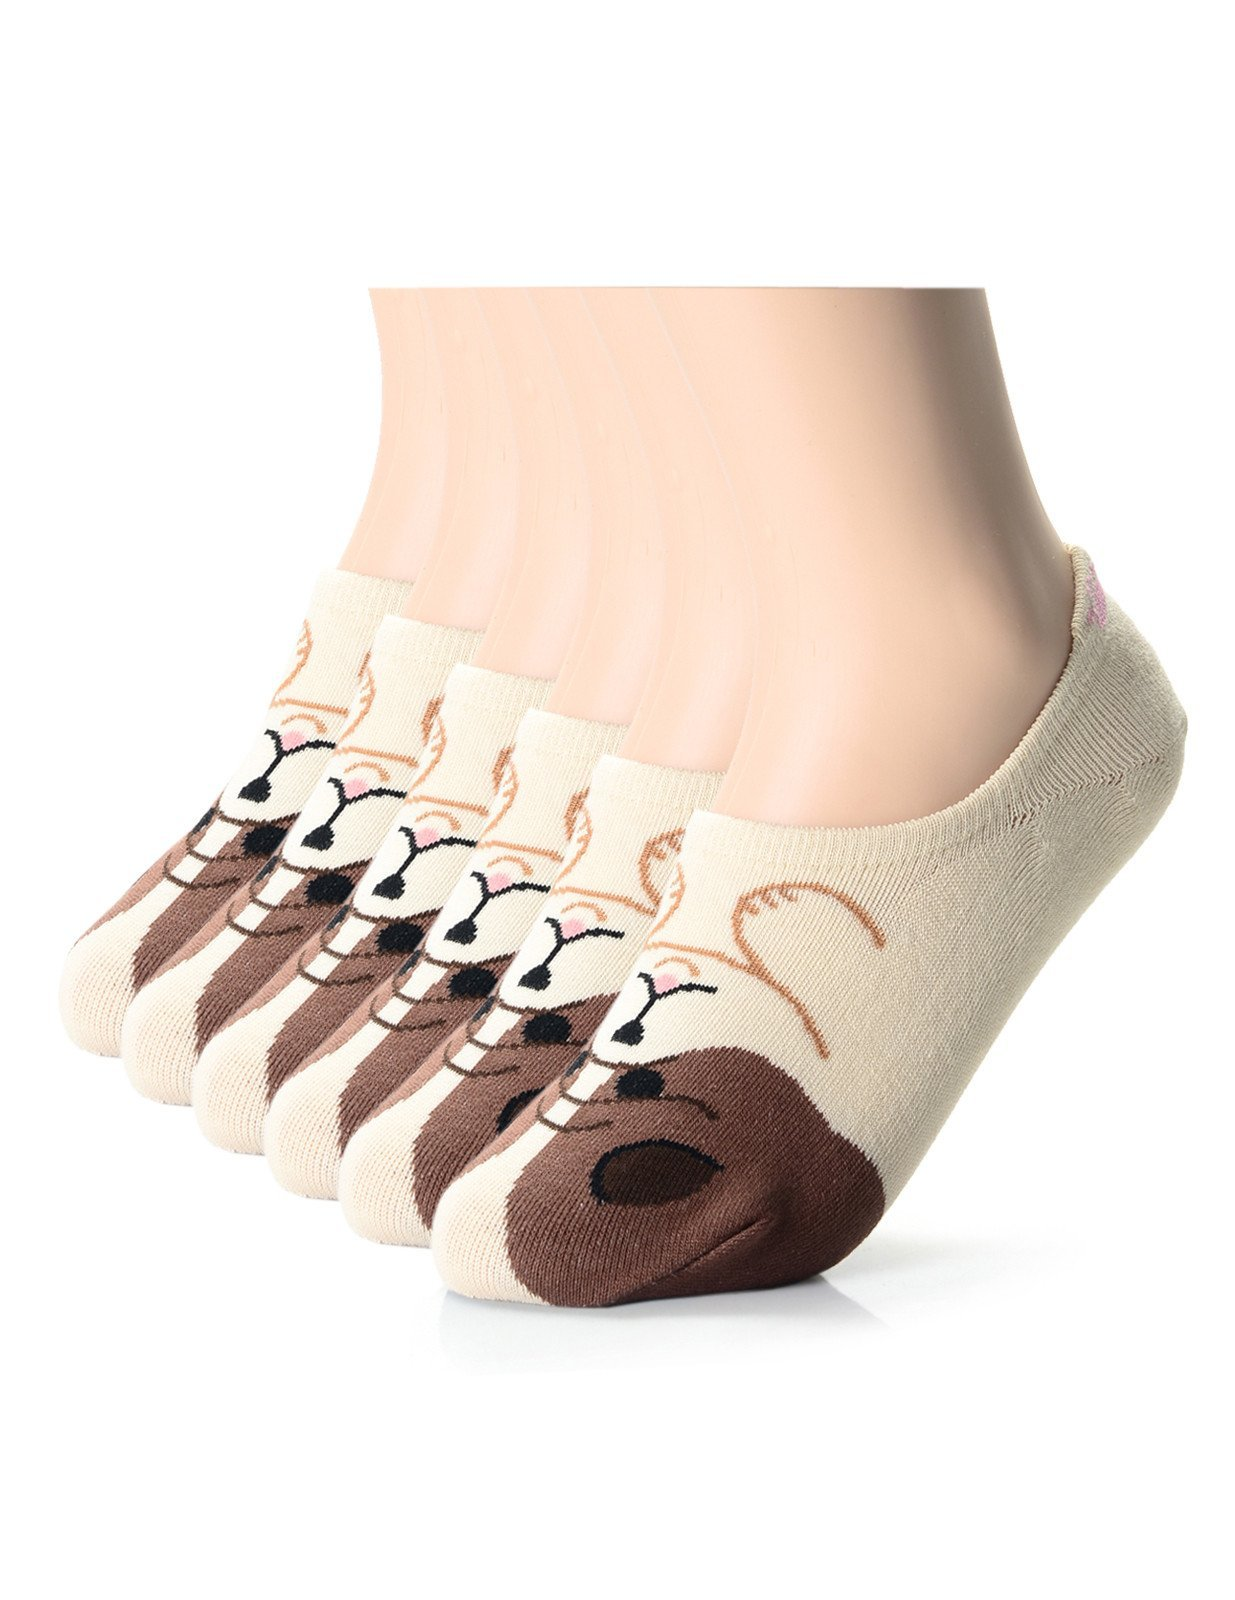 FLATSEVEN Womens Fashion Puppy Friends No Show Socks (XWS1001J) Beige, 6EA